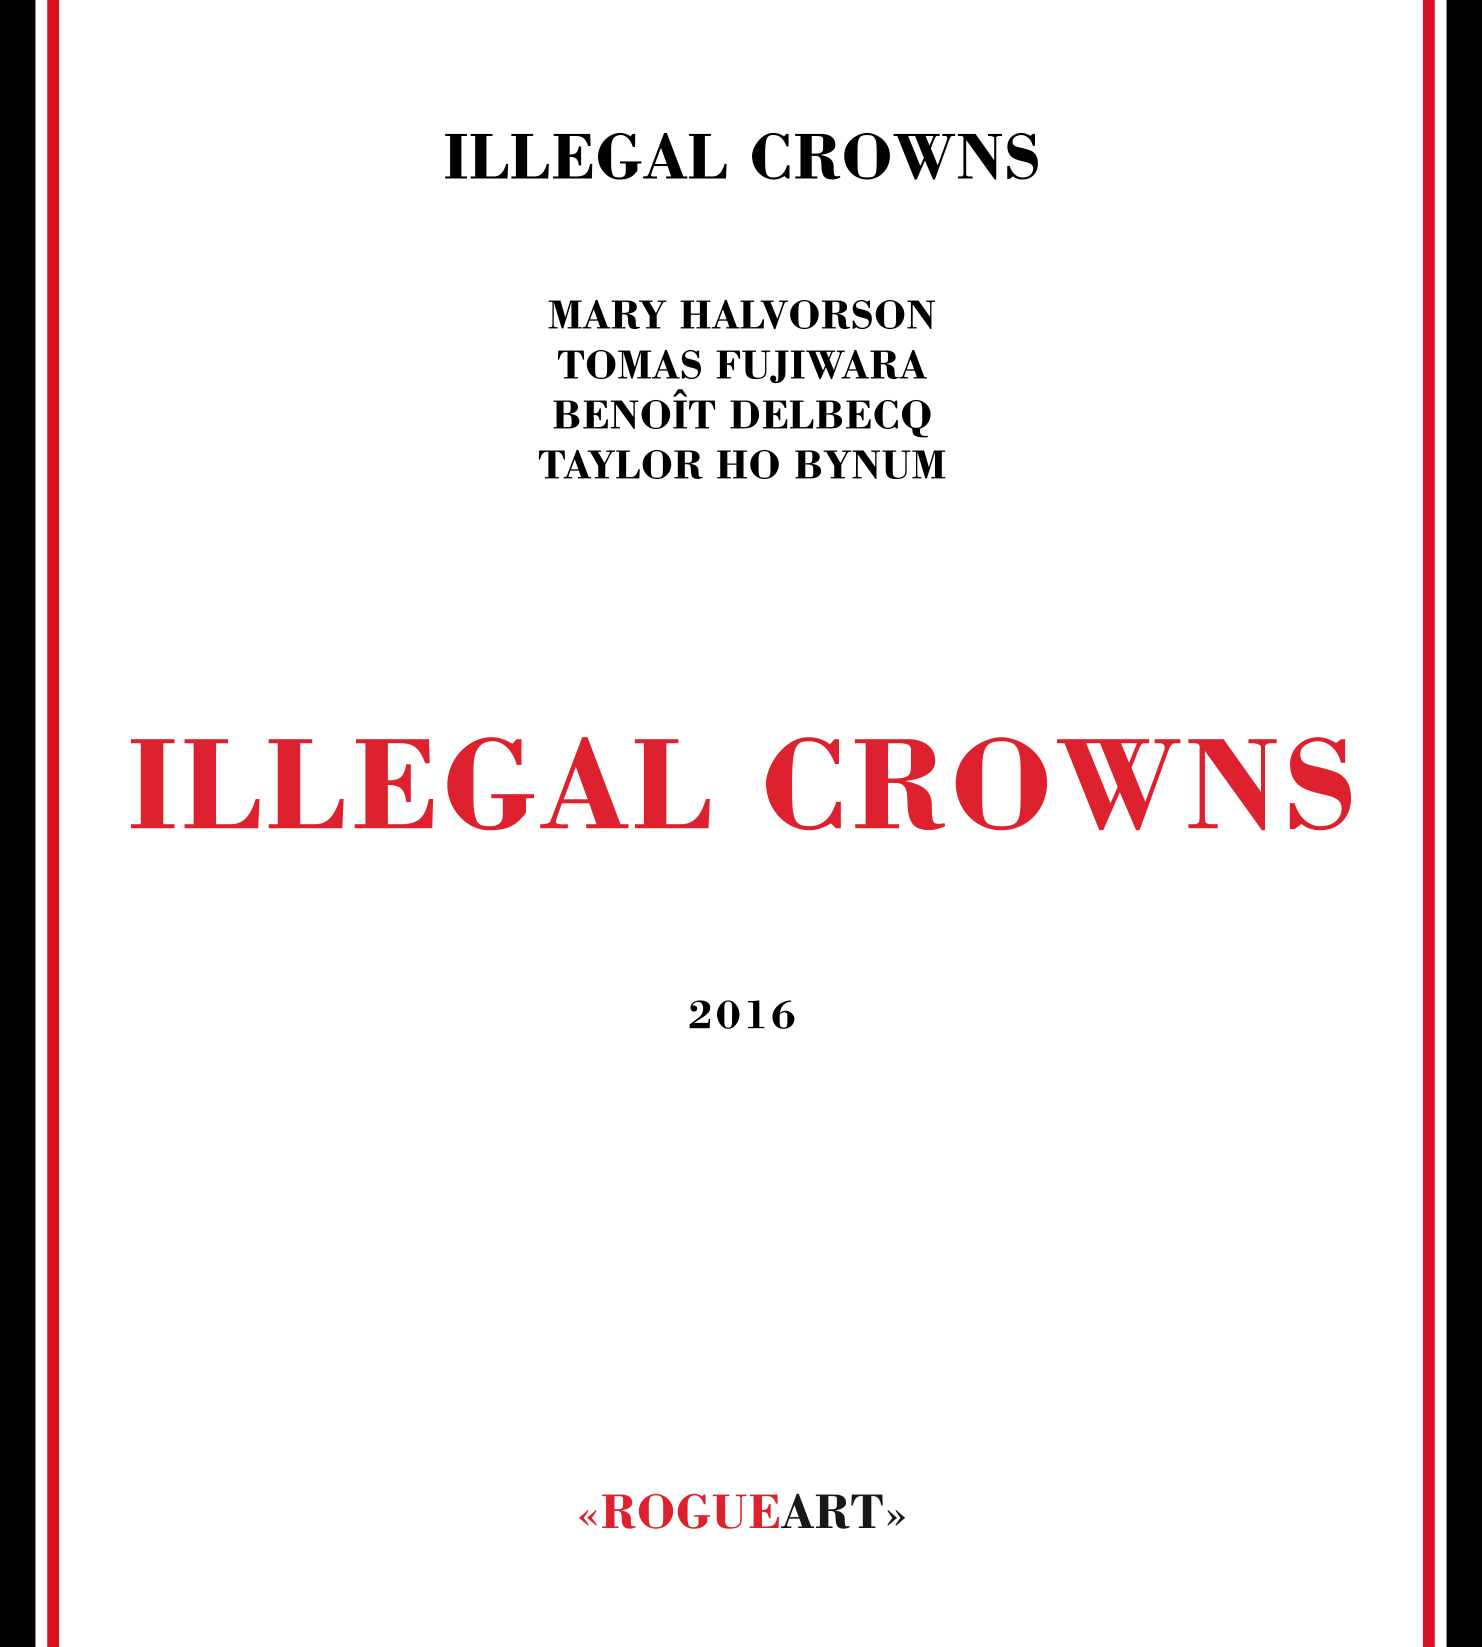 Front cover of the album ILLEGAL CROWNS